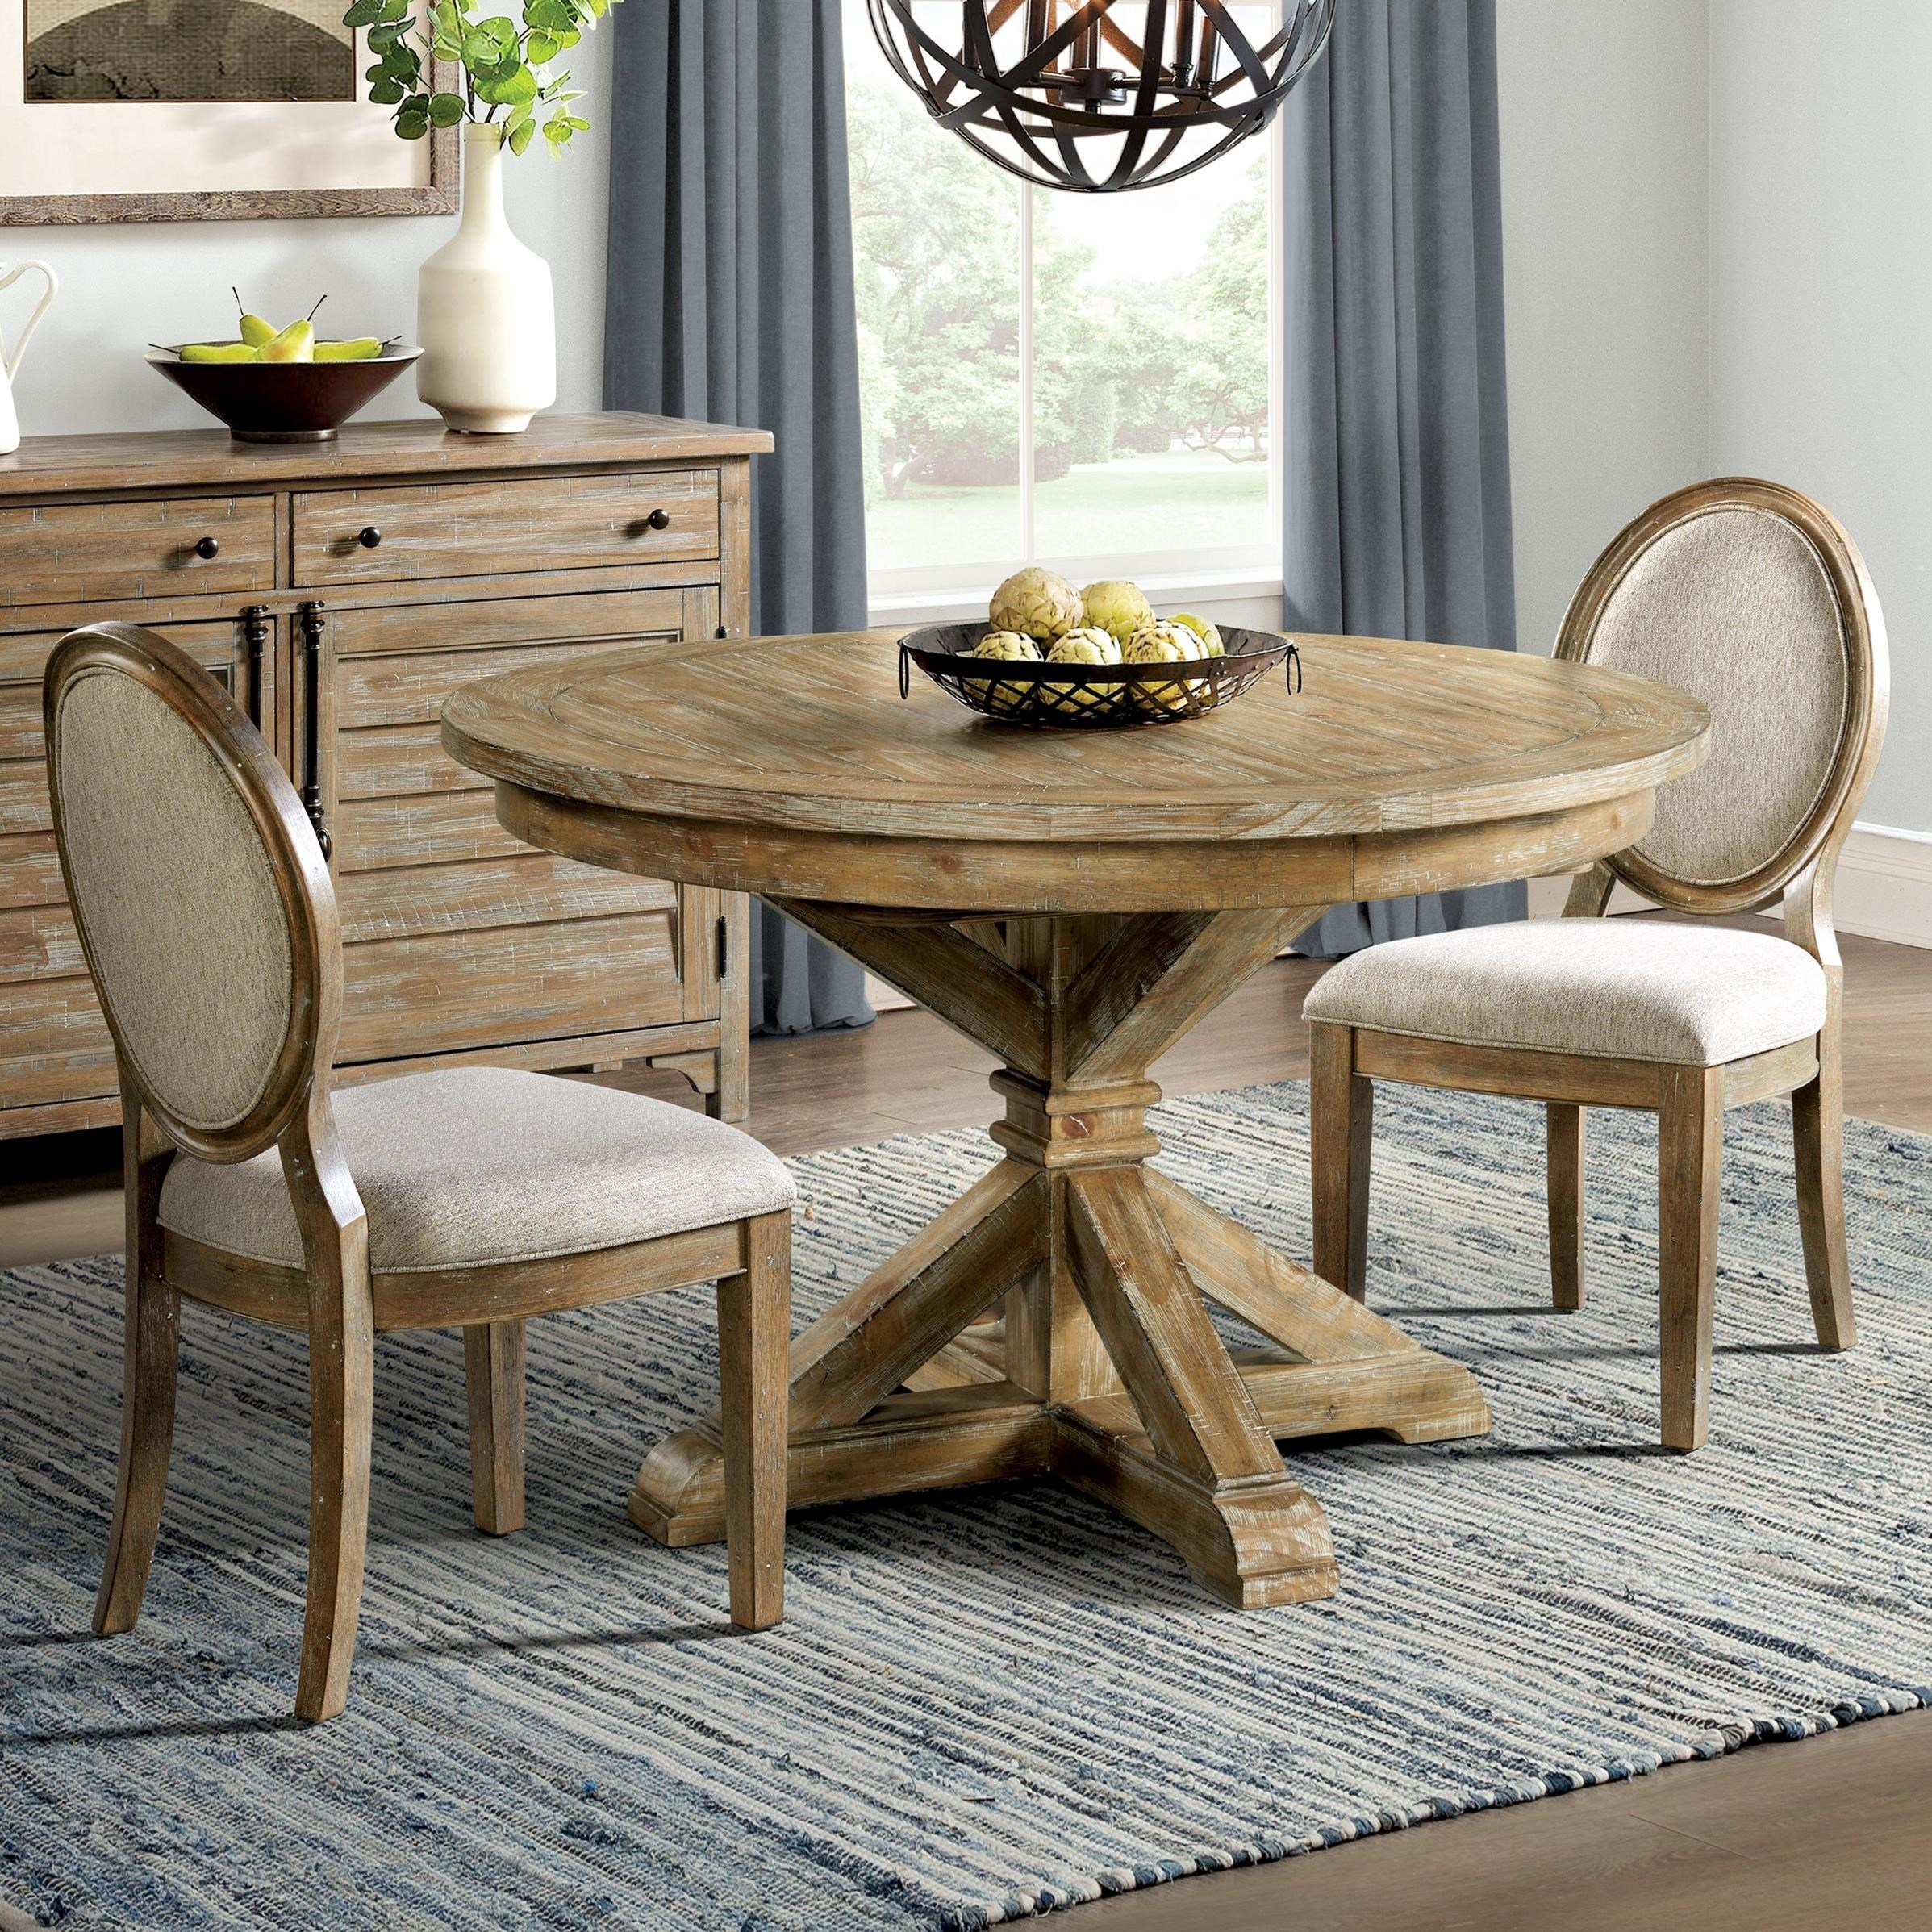 Sonora 3-Piece Round Dining Table Set by Riverside Furniture at Zak's Home